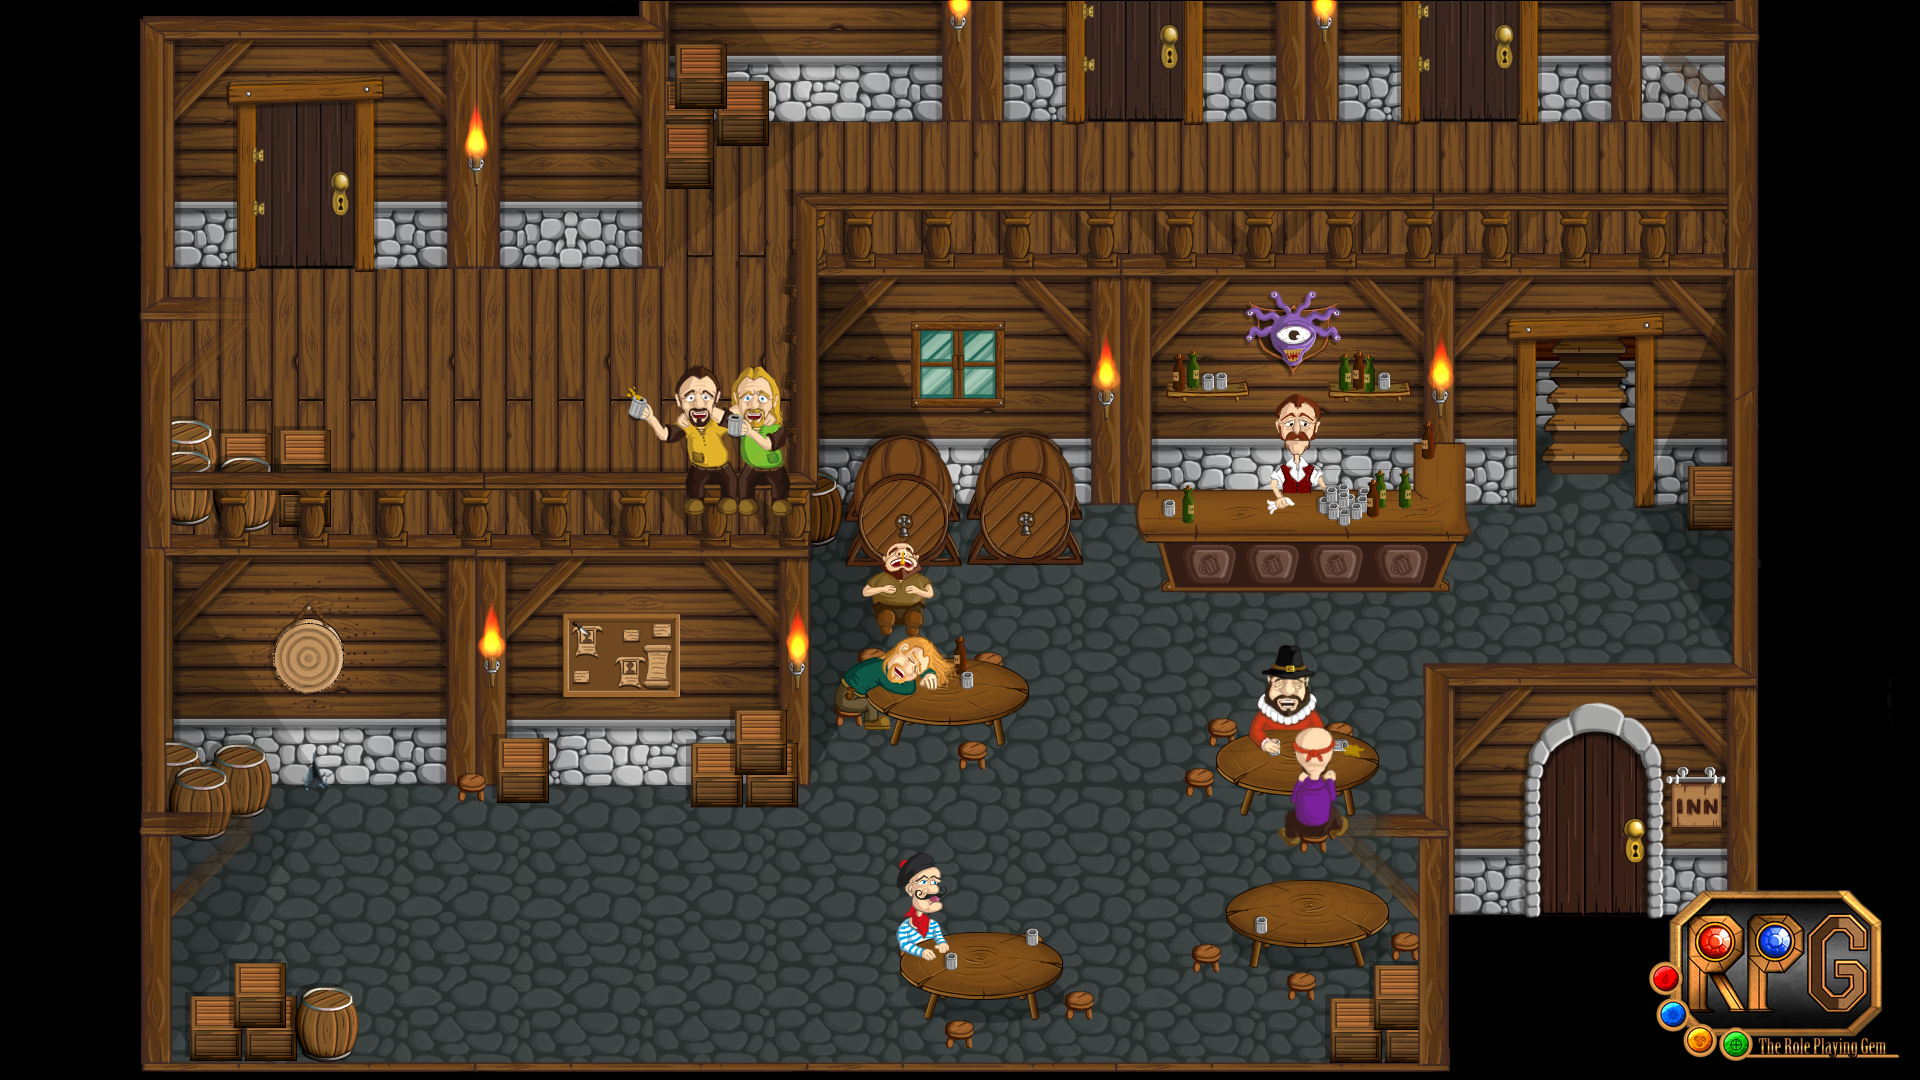 Tavern Image Rpg The Role Playing Gem Indie Db